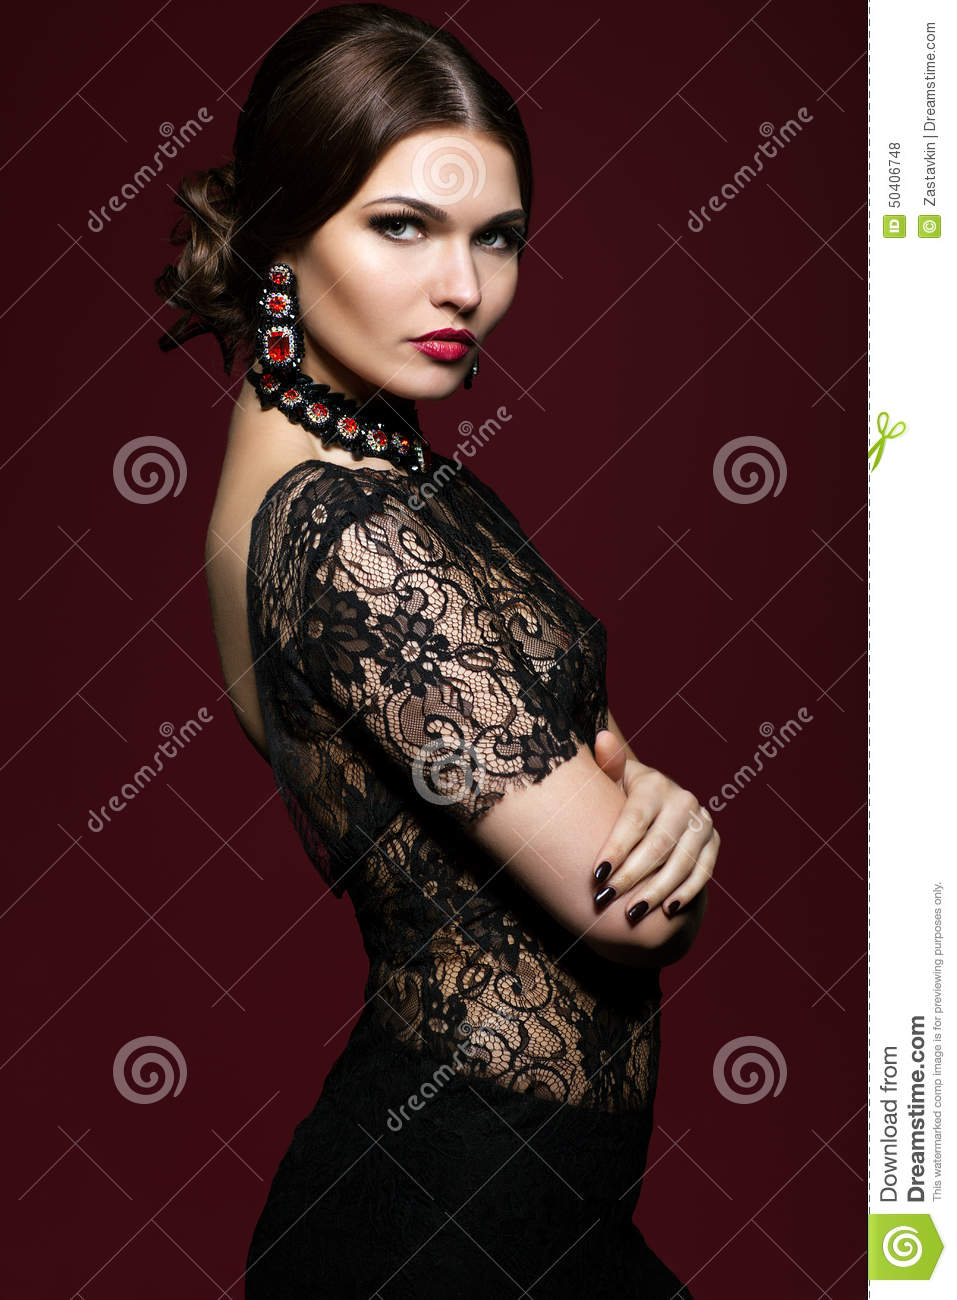 Young Beautiful Woman In Black Dress On Marsala Color